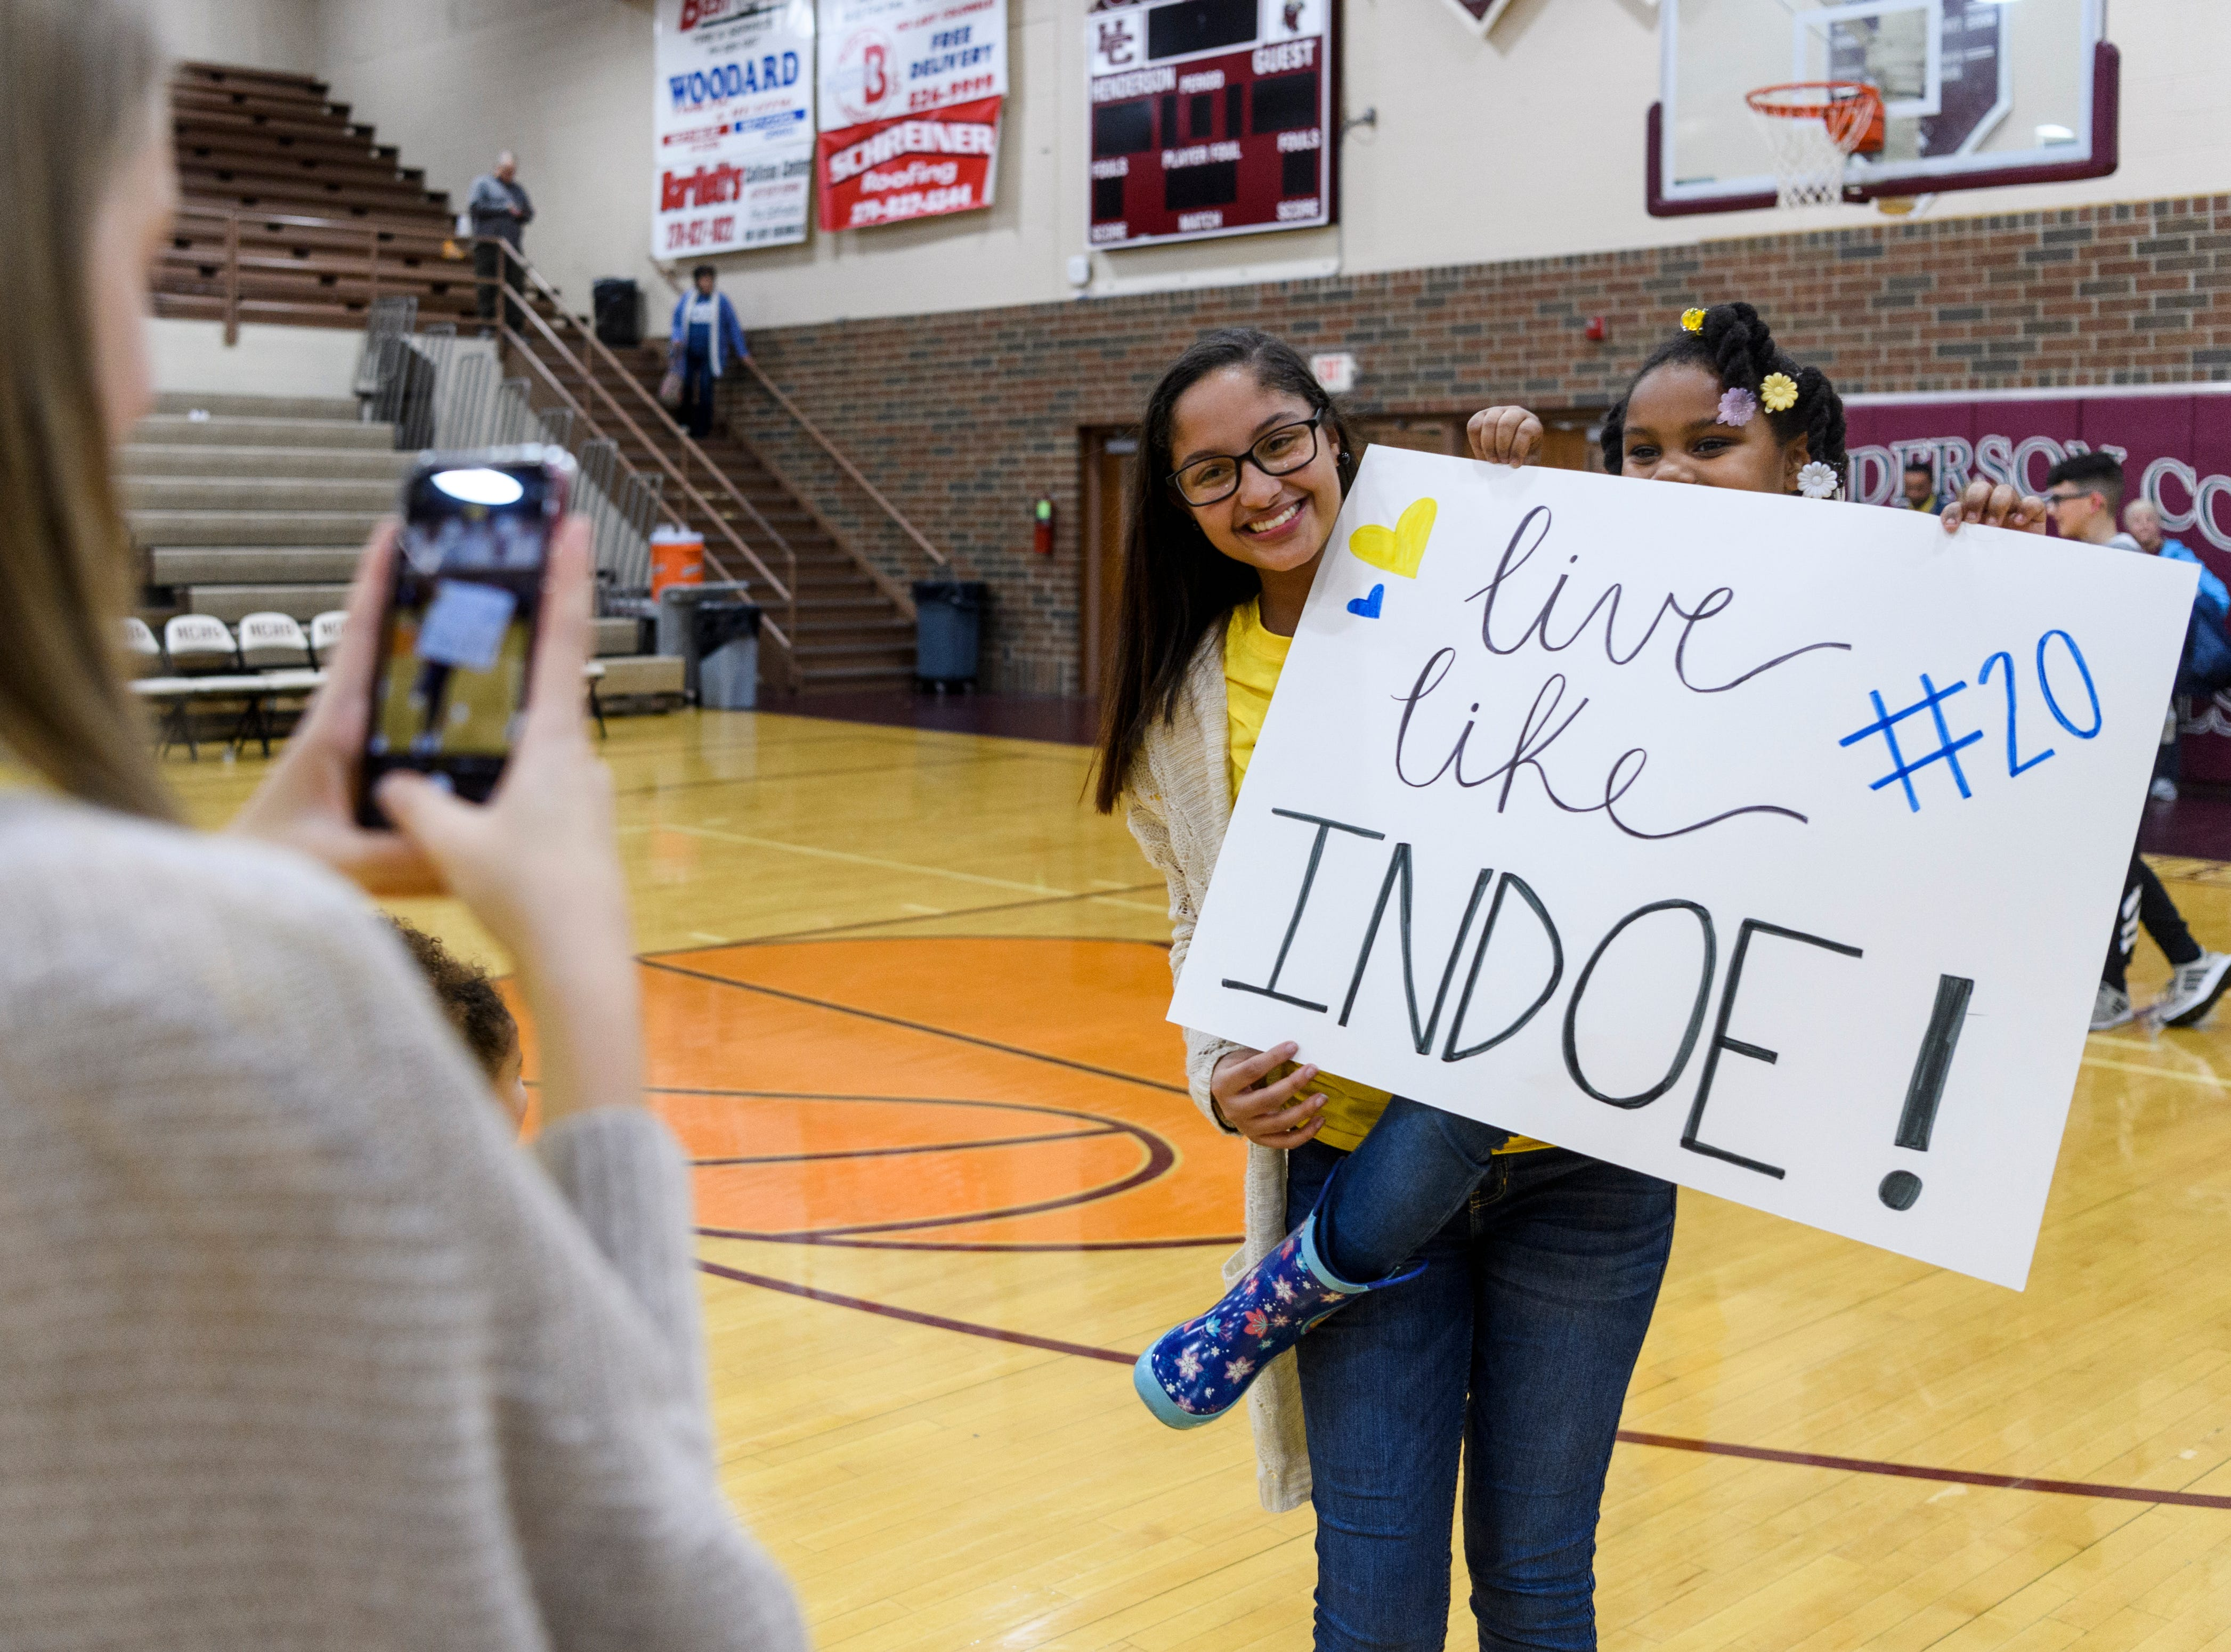 Innasent Walker, 6, poses for a picture with a Henderson County high school student after the Christian County Colonels vs Henderson County Colonels basketball game in Henderson, Ky., Friday, Dec. 14, 2018. The sign they were holding was made in honor of InDarius Walker, a Henderson County junior who died last Monday after battling bone cancer.